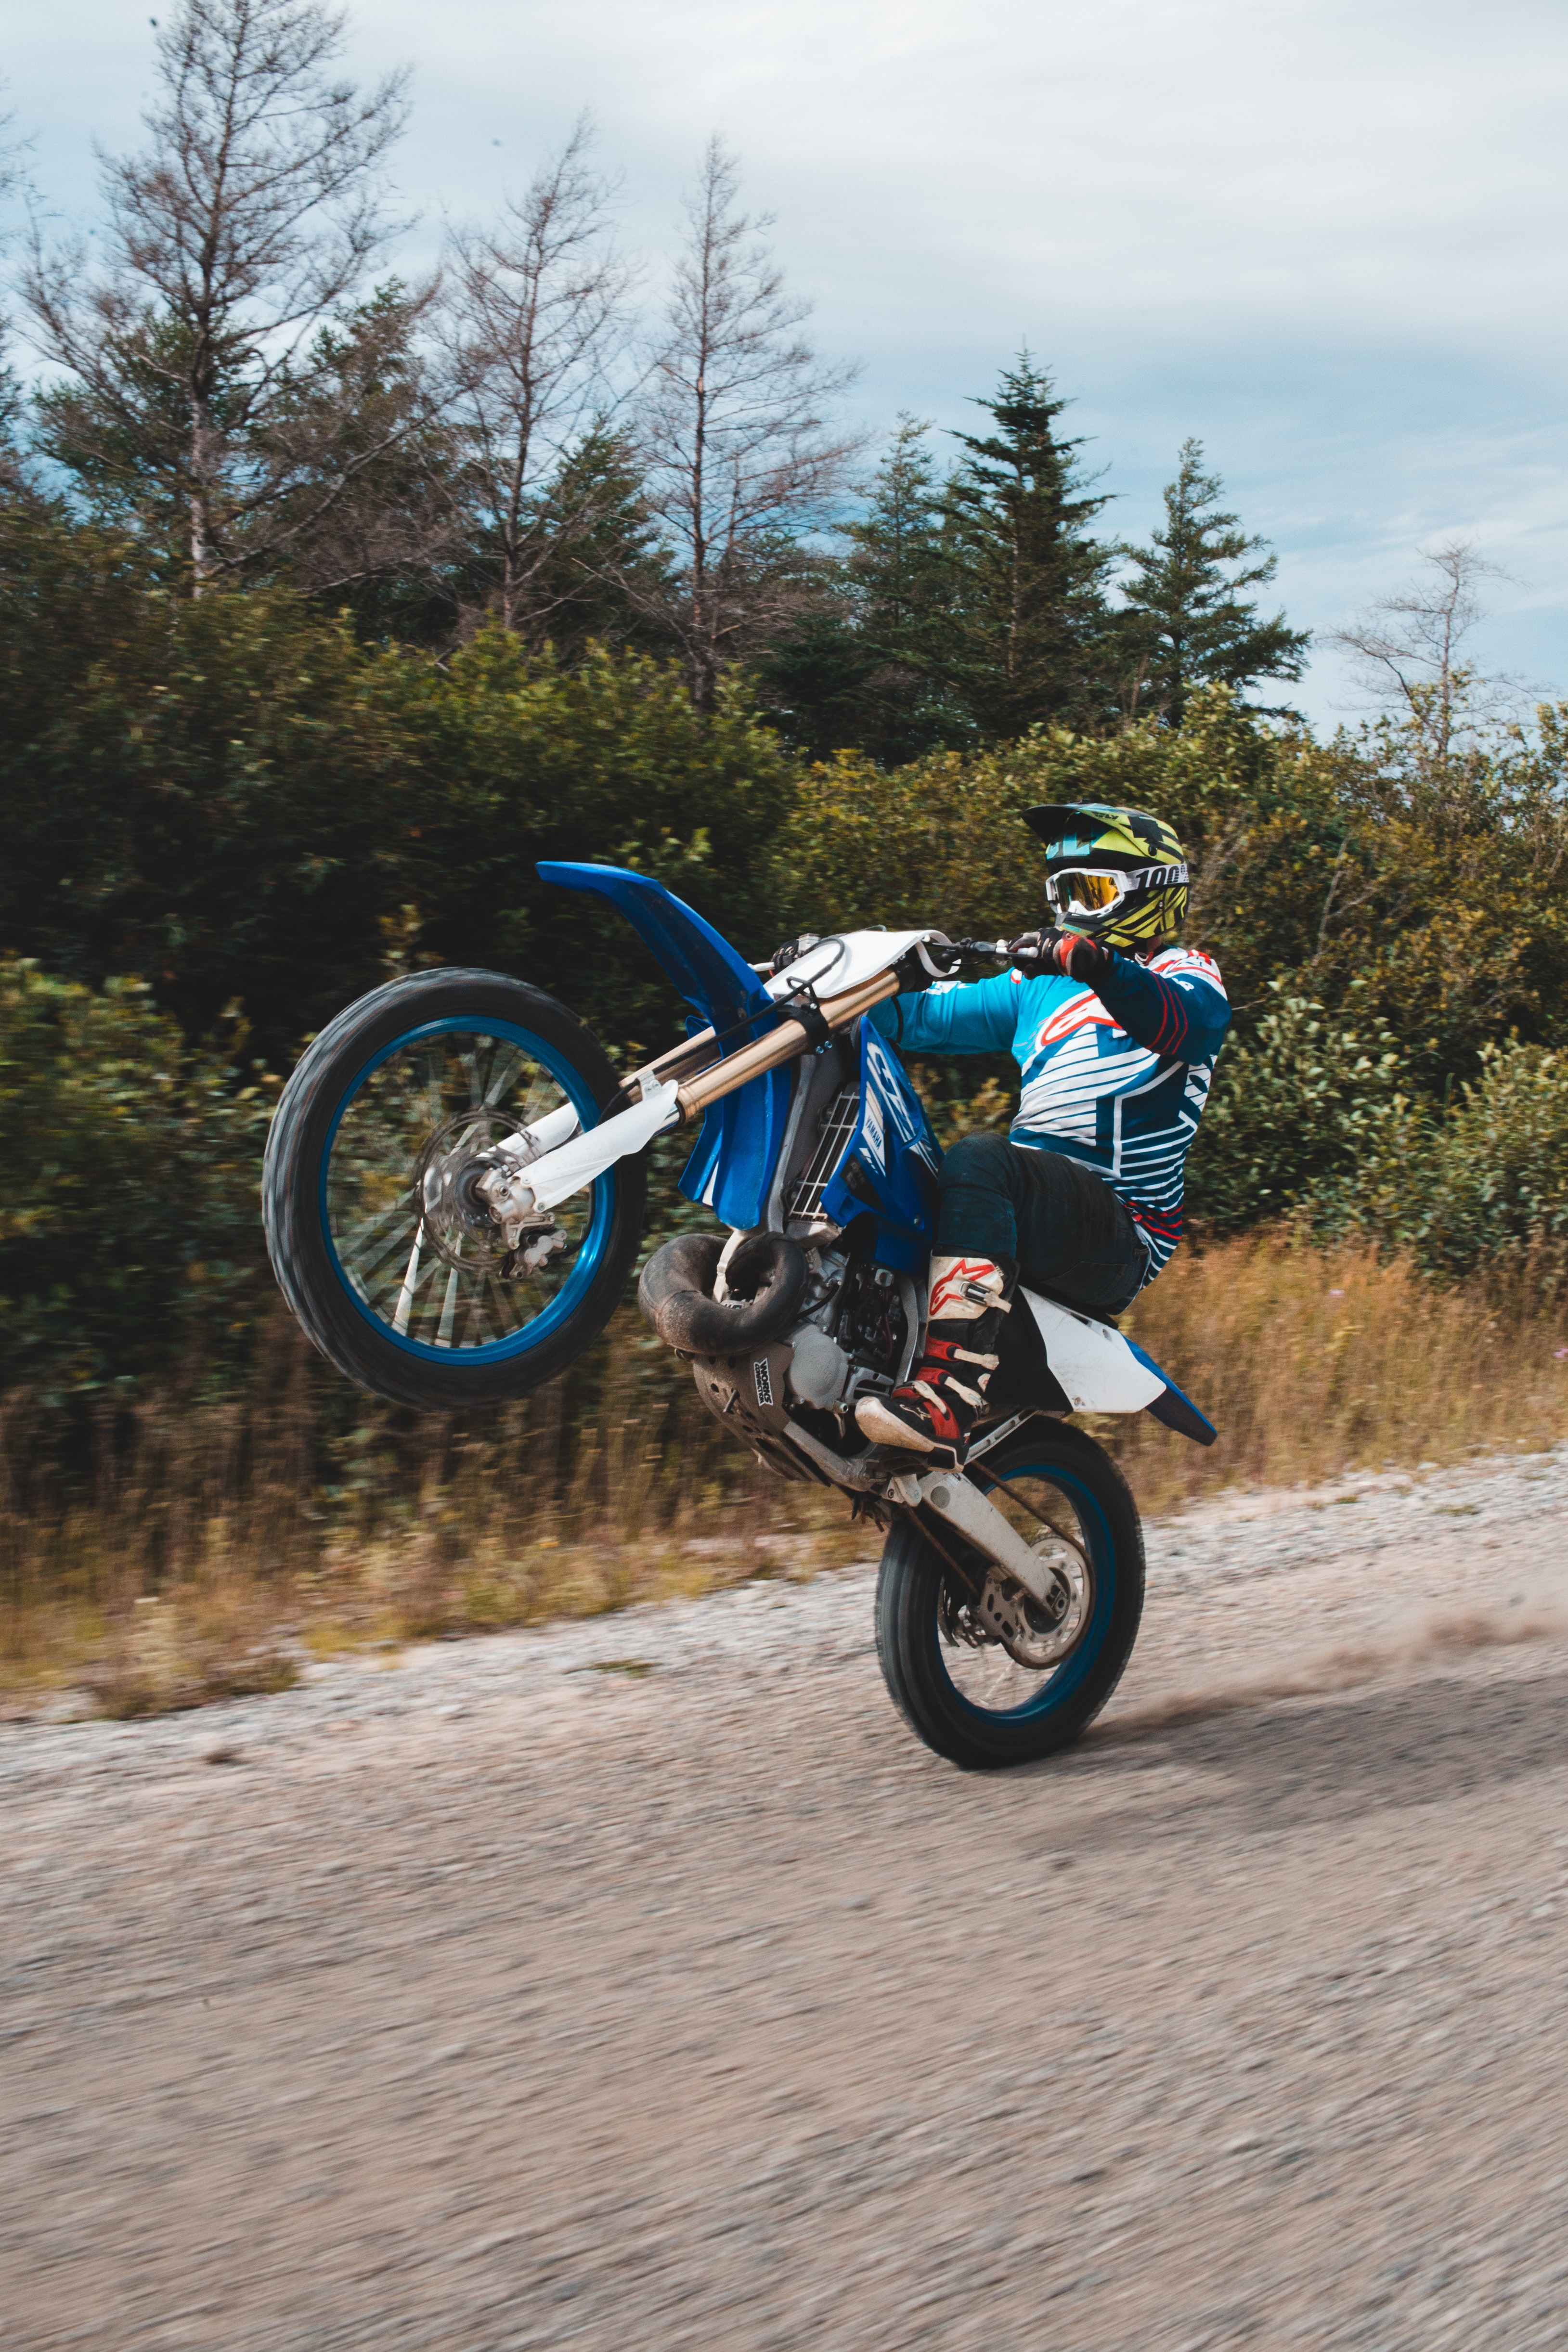 Man In White And Blue Racing Suit Riding Blue Motocross Dirt Bike Photo Free Machine Image On Unsplash